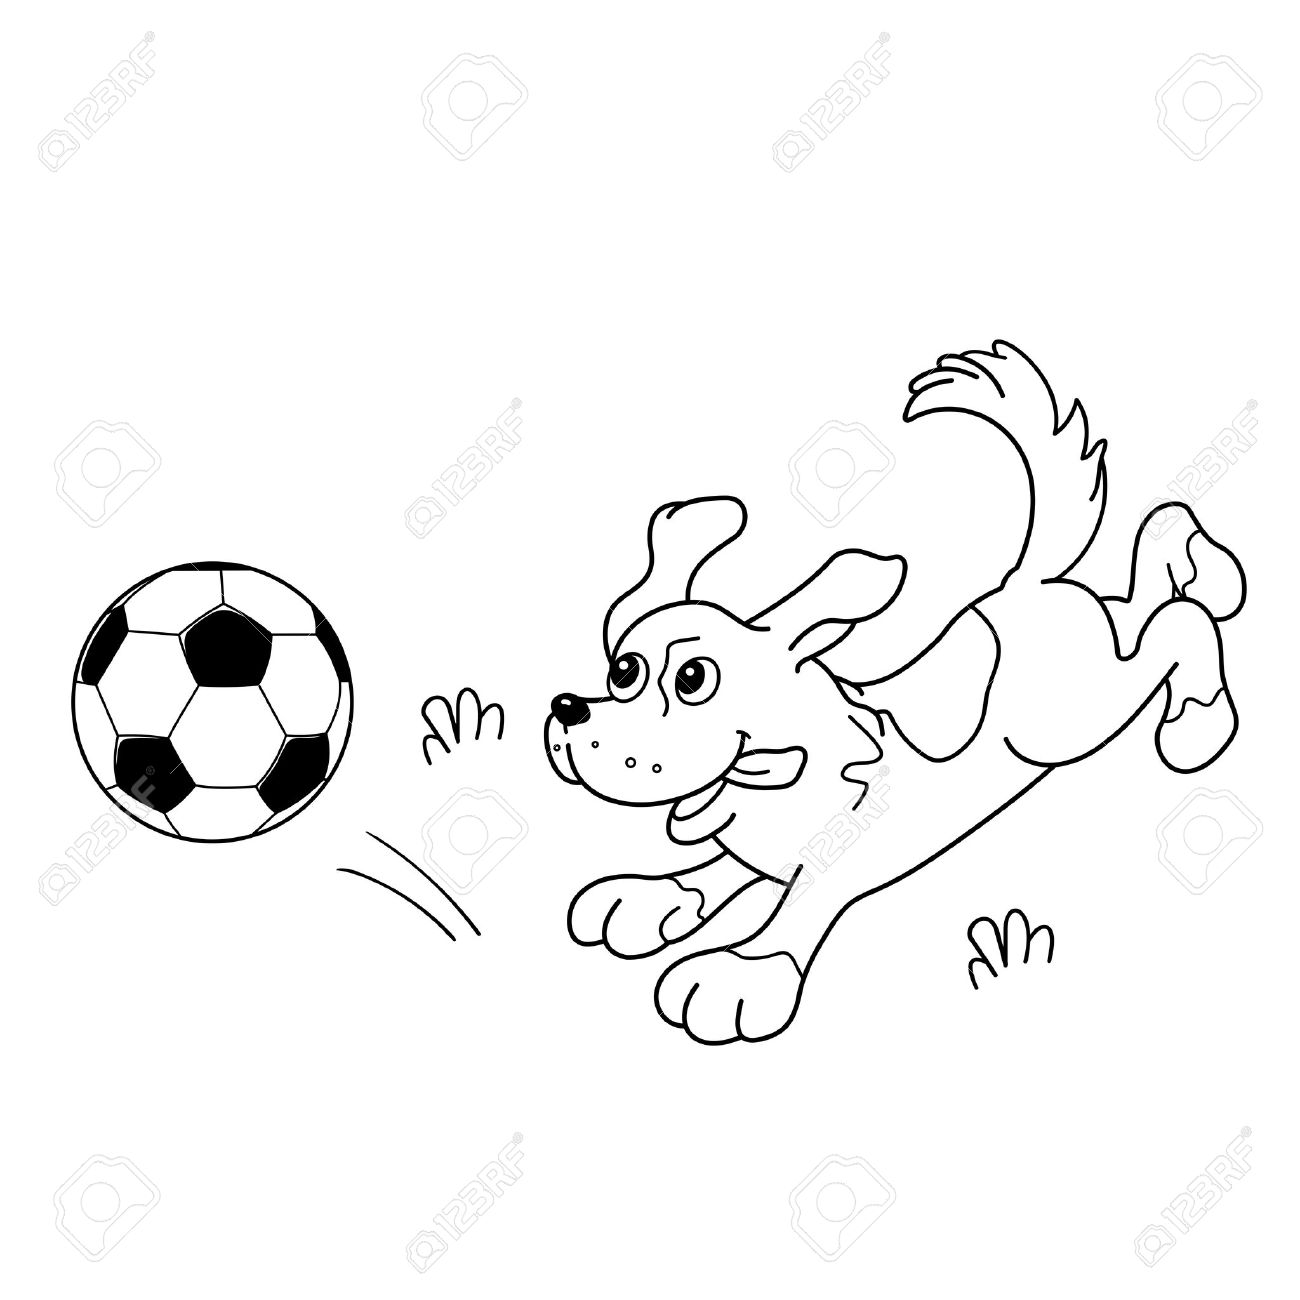 Coloring Page Outline Of Cartoon Dog With Soccer Ball Coloring